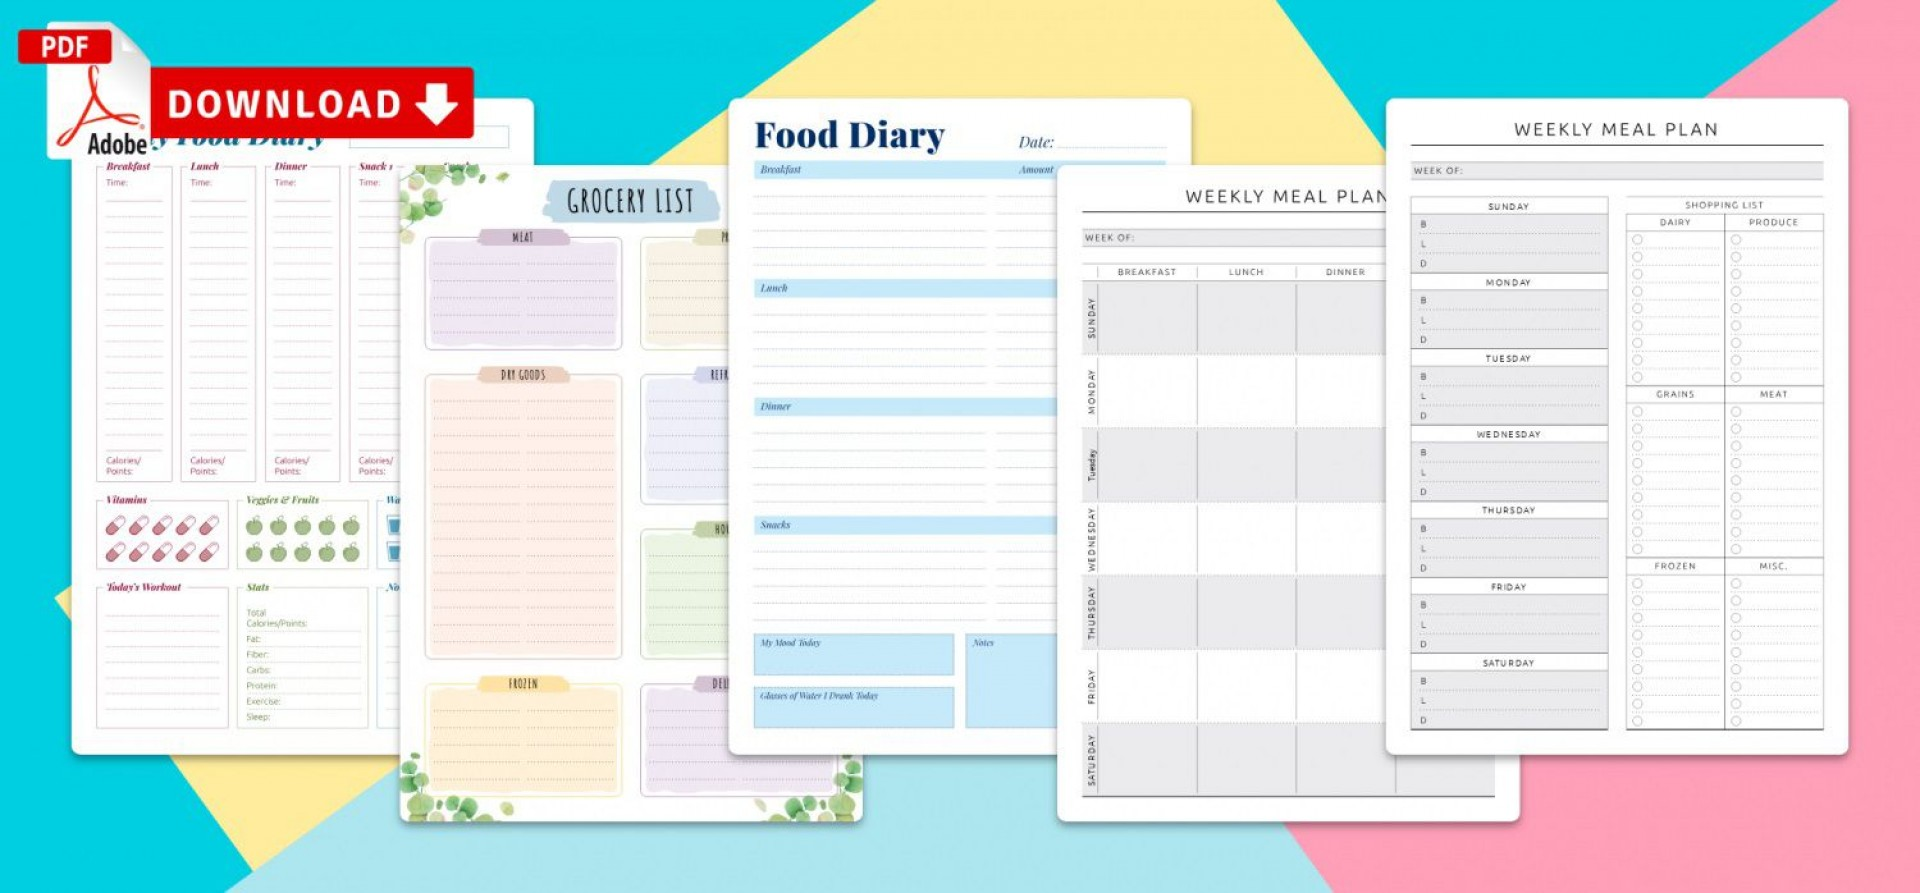 013 Magnificent Meal Plan Calendar Template Highest Clarity  Excel Weekly 30 Day1920